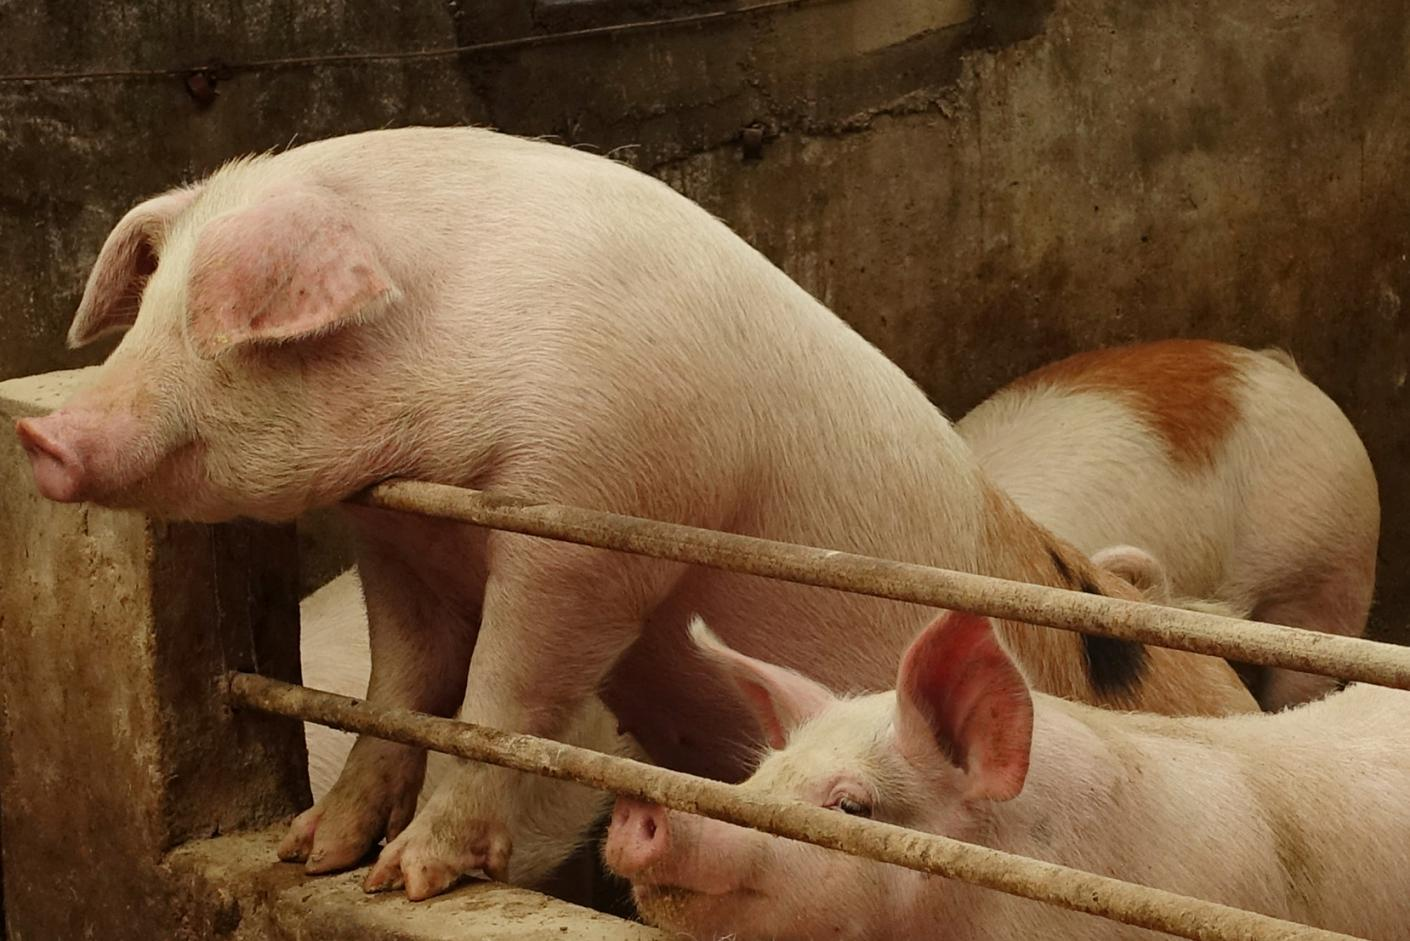 Vietnam confirms first African swine fever cases on three farms